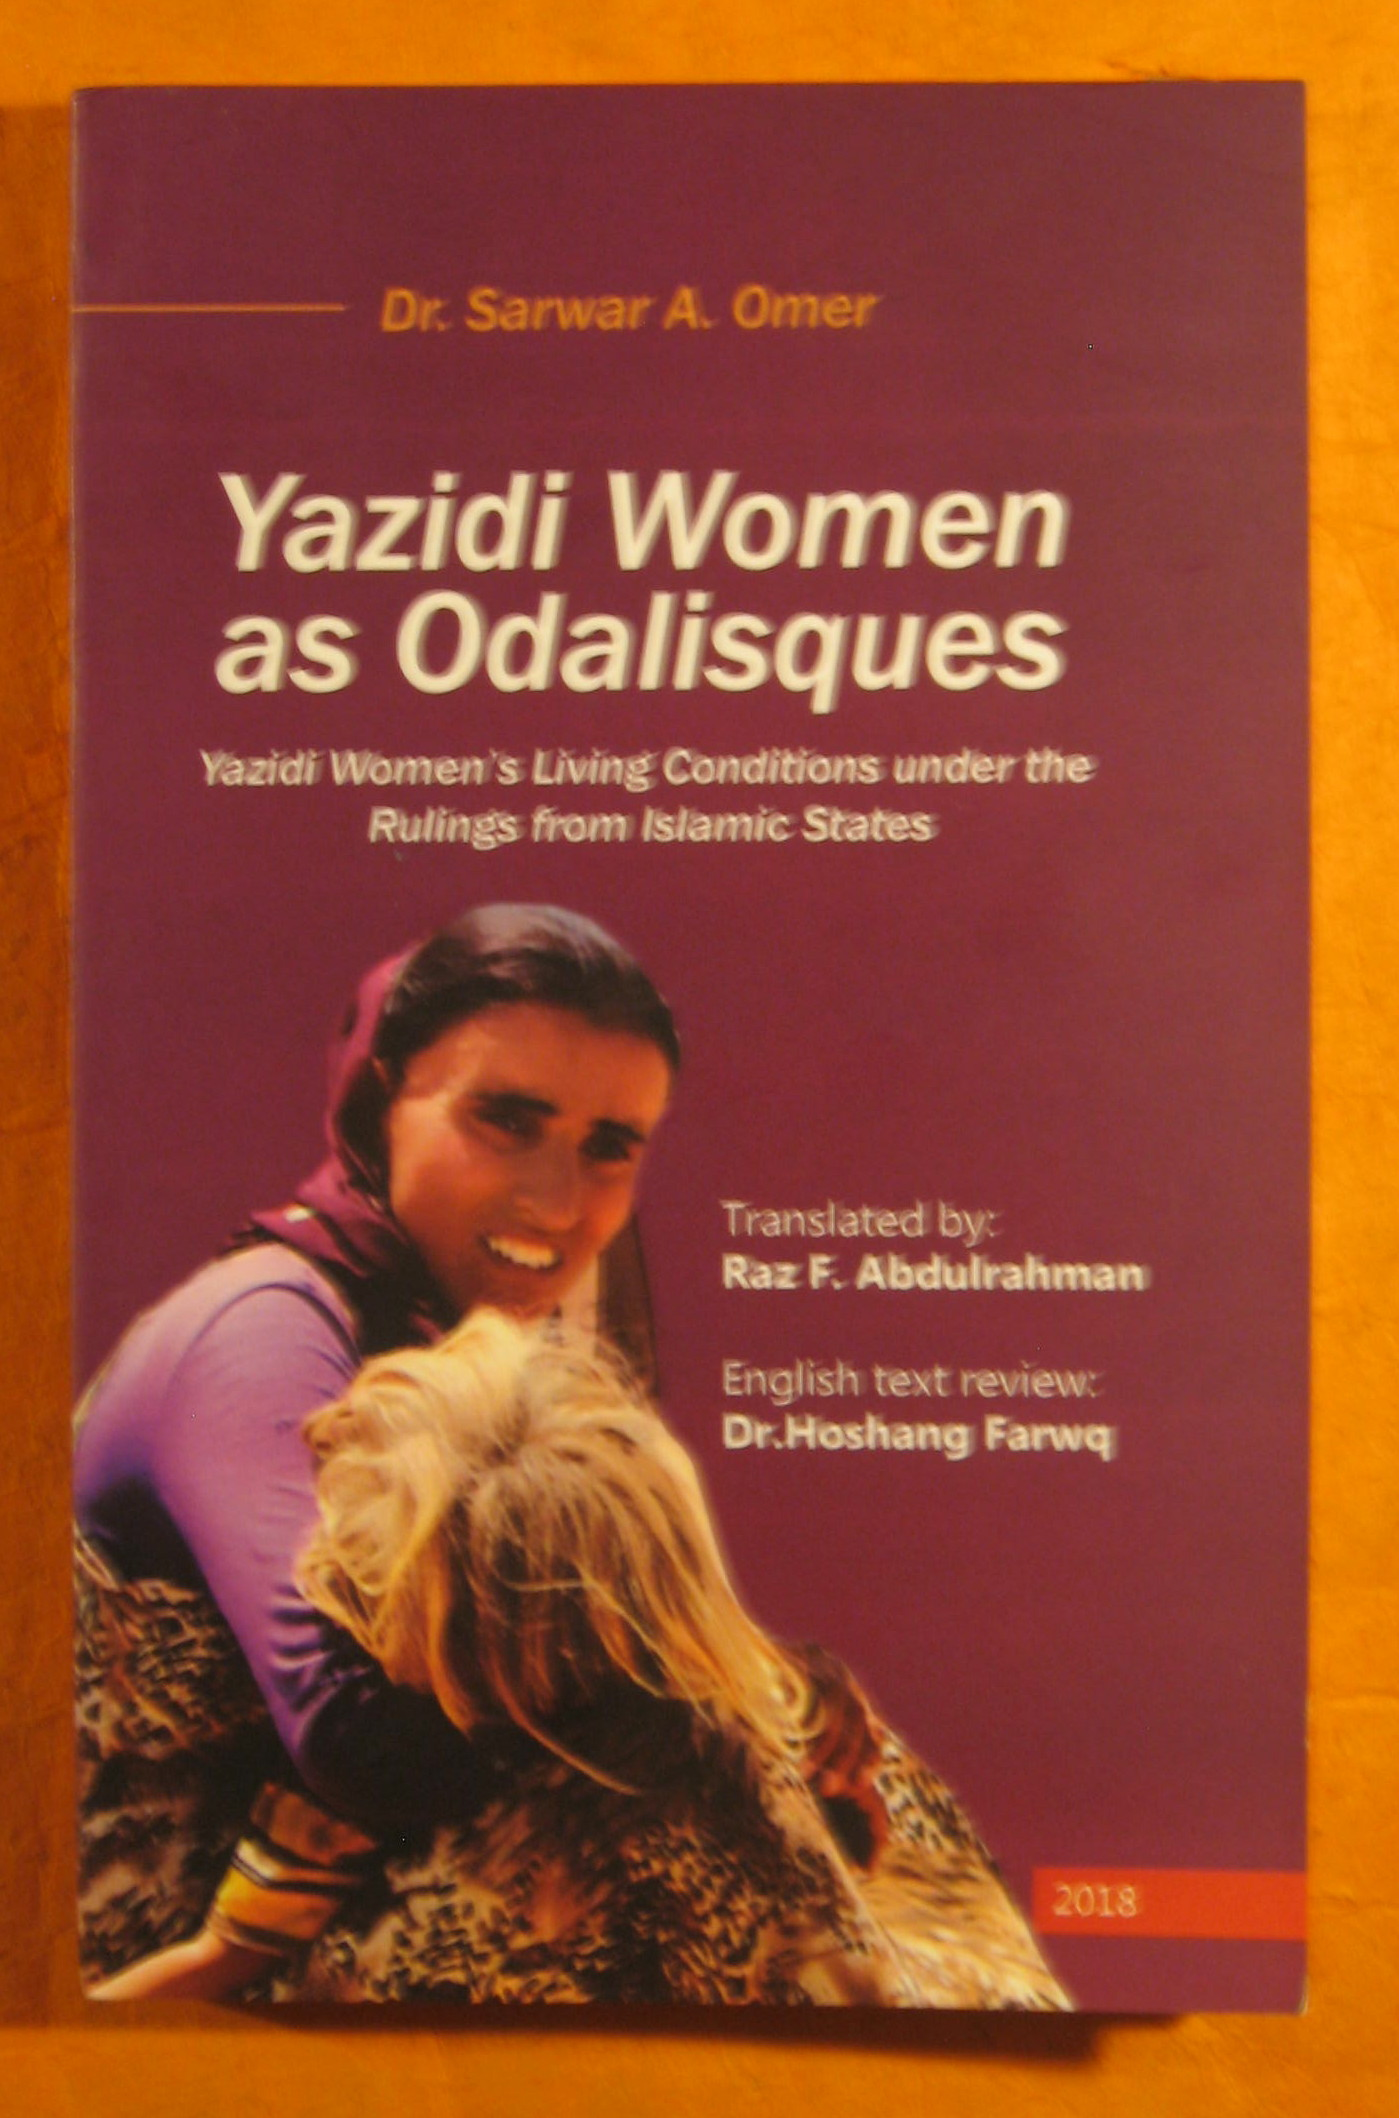 Image for Yazidi Women as Odalisques: Yazidi Women's Living Conditions under the Rulings from Islamic States